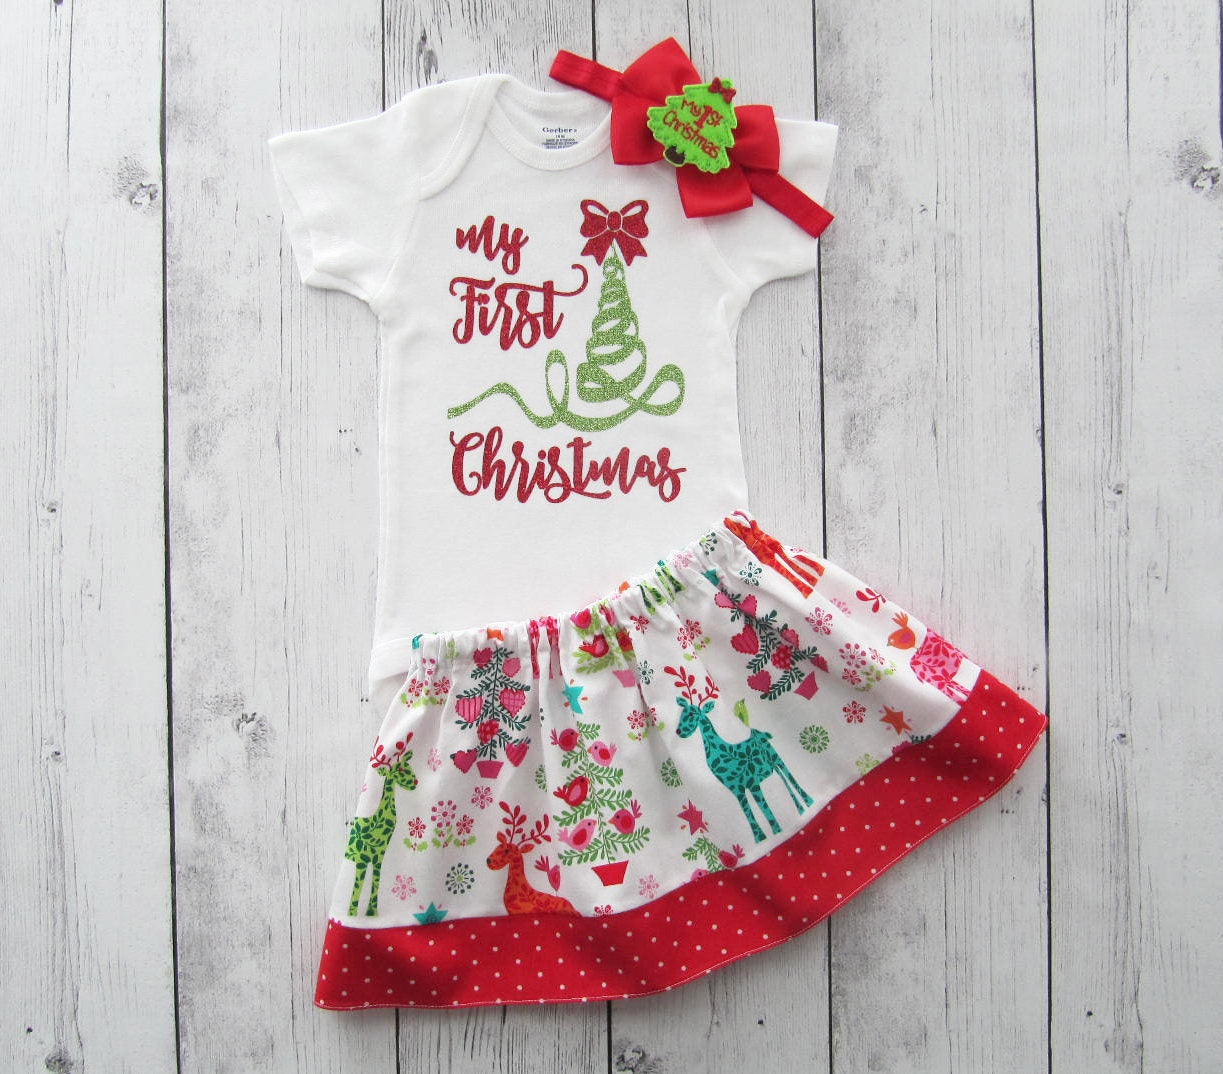 My First Christmas Oufit - baby girl holiday outfit, my first christmas, girl christmas dress, reindeer, first christmas outfit baby girl